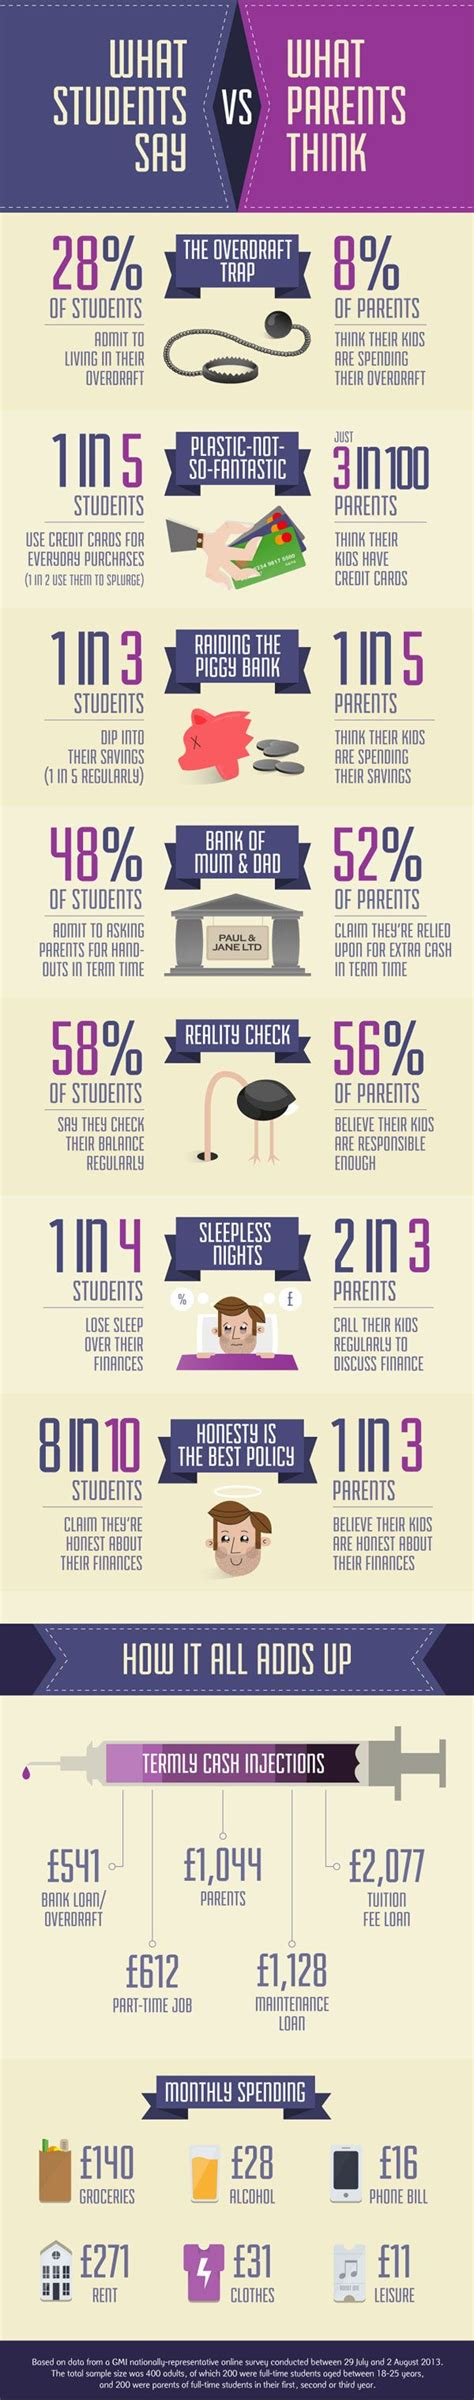 Natwest Surveys For Money - natwest the truth about student spending infographic university pinterest